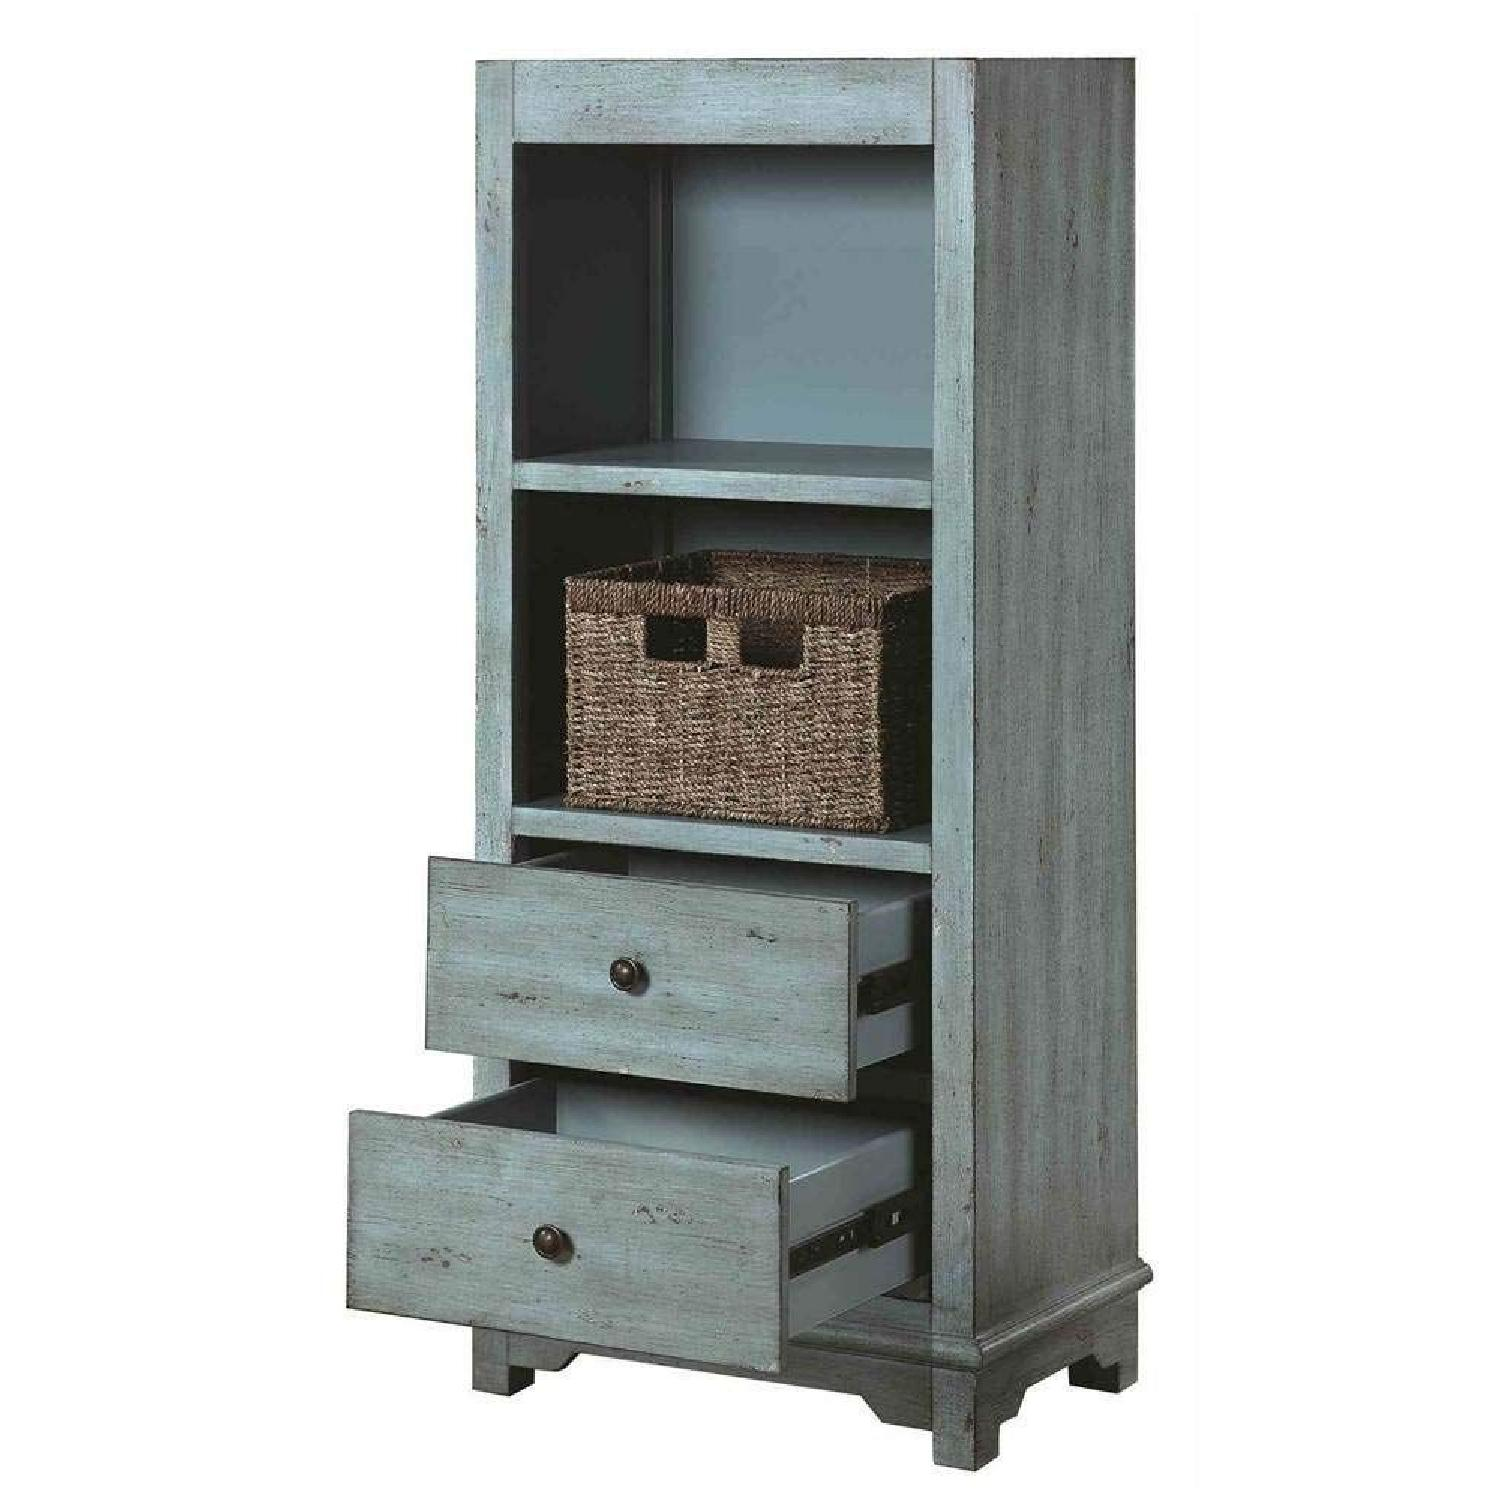 Country-Inspired Accent Cabinet In Light Blue Finish - image-1